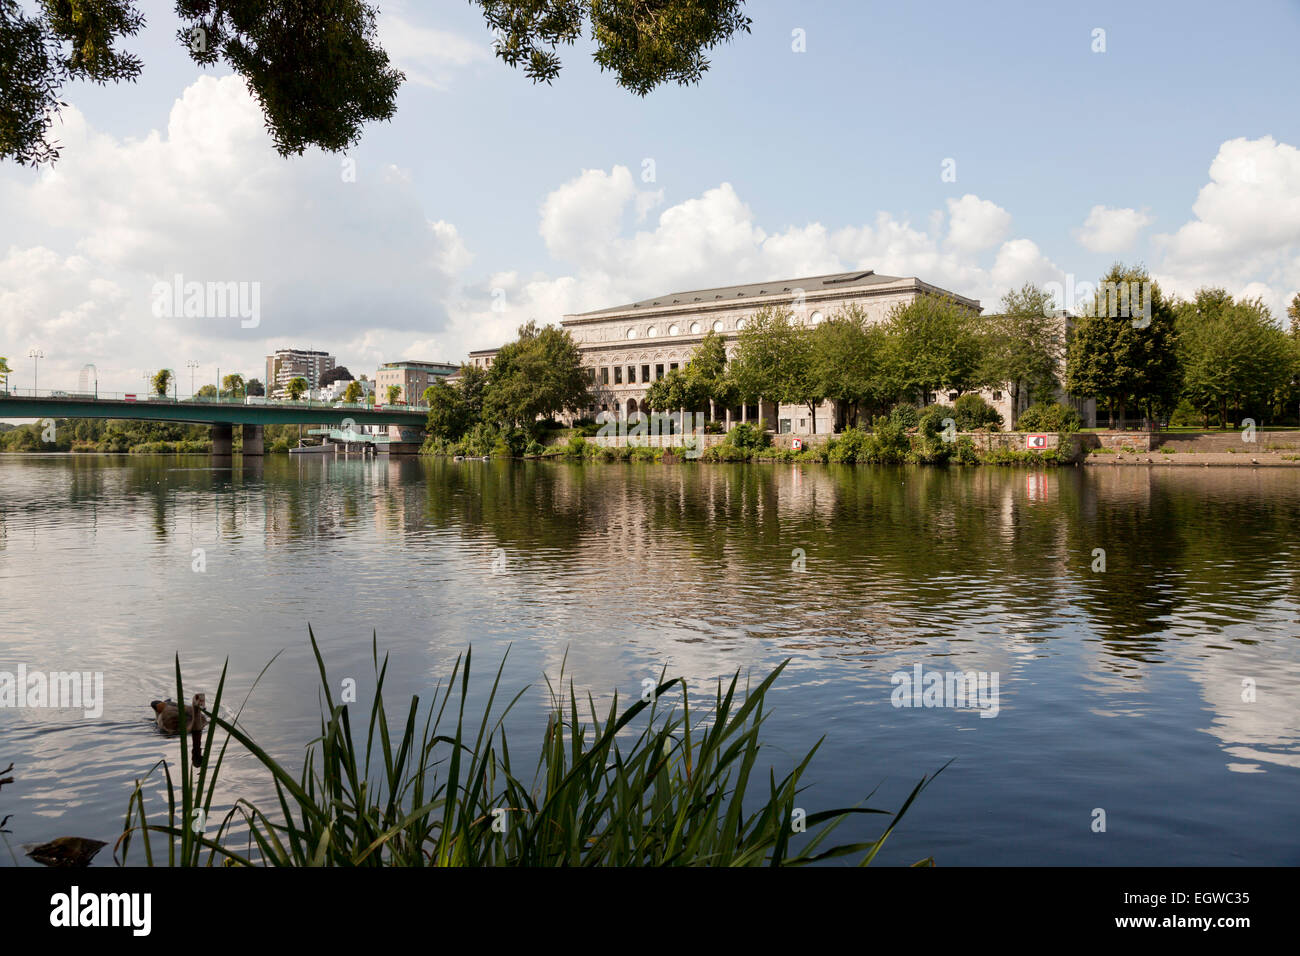 Ruhr river and Stadthalle, Muelheim an der Ruhr, North Rhine-Westphalia, Germany, Europe - Stock Image